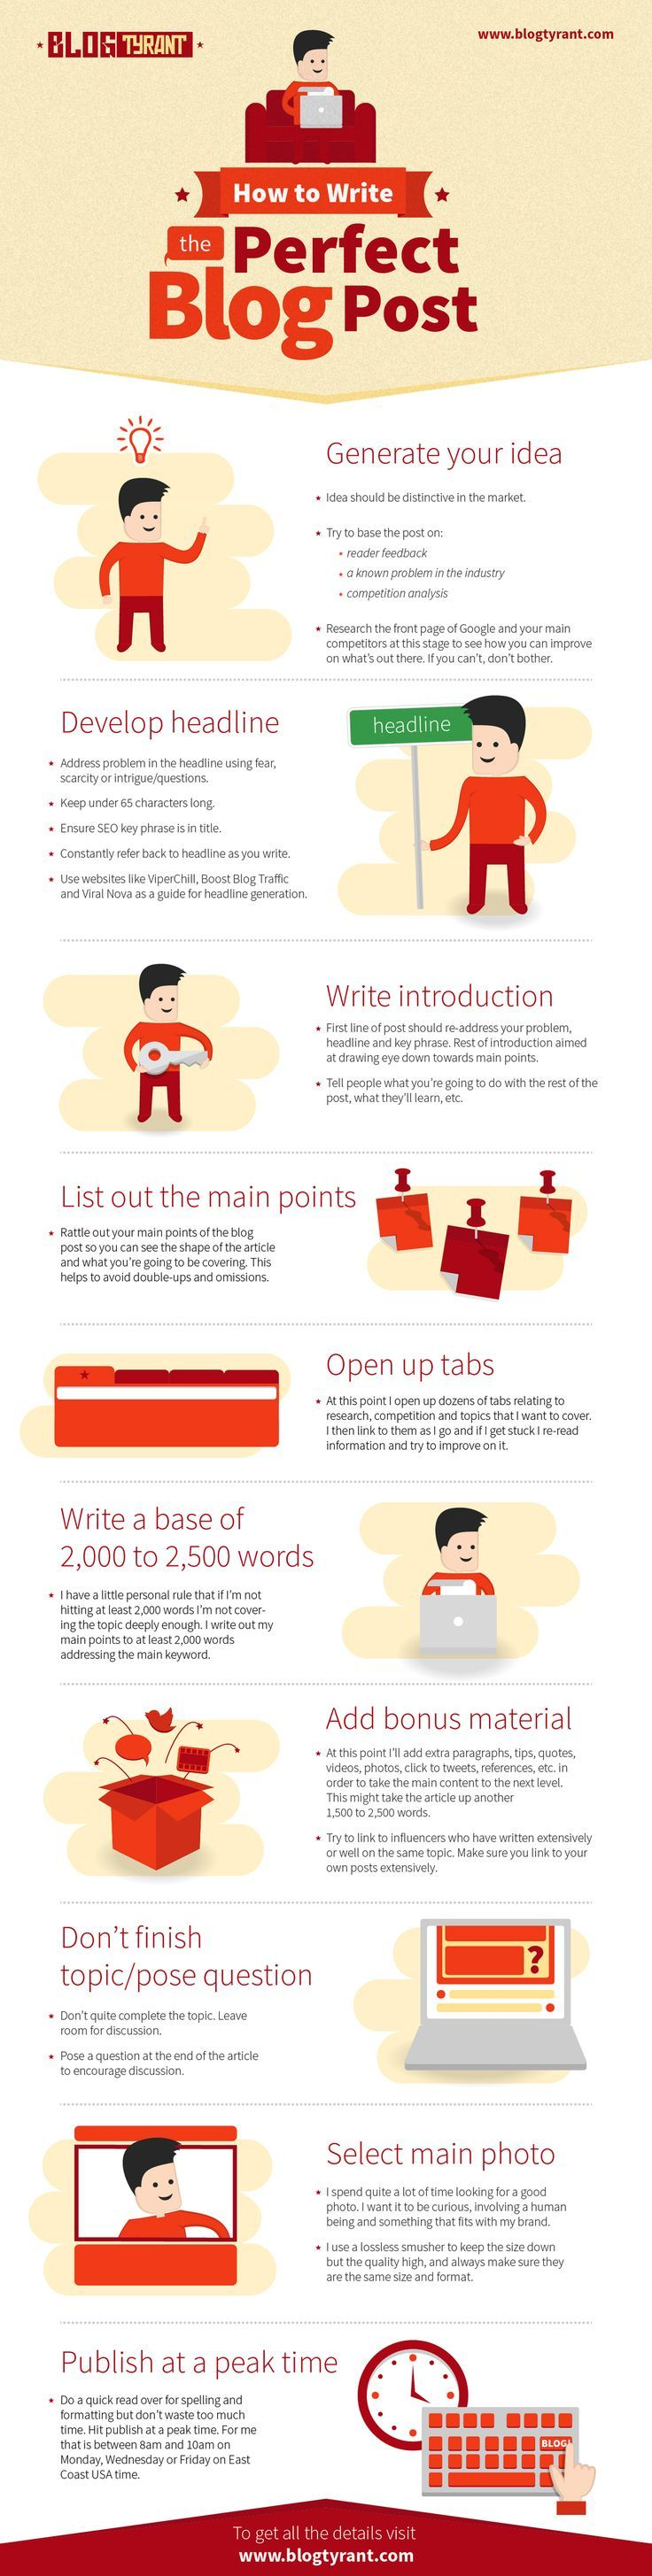 "How to Write the Perfect Blog Post: A Complete Guide to Copy - Infographic by <a href=""/blogtyrant/"" title=""Ramsay Taplin"">@Ramsay Taplin</a>"